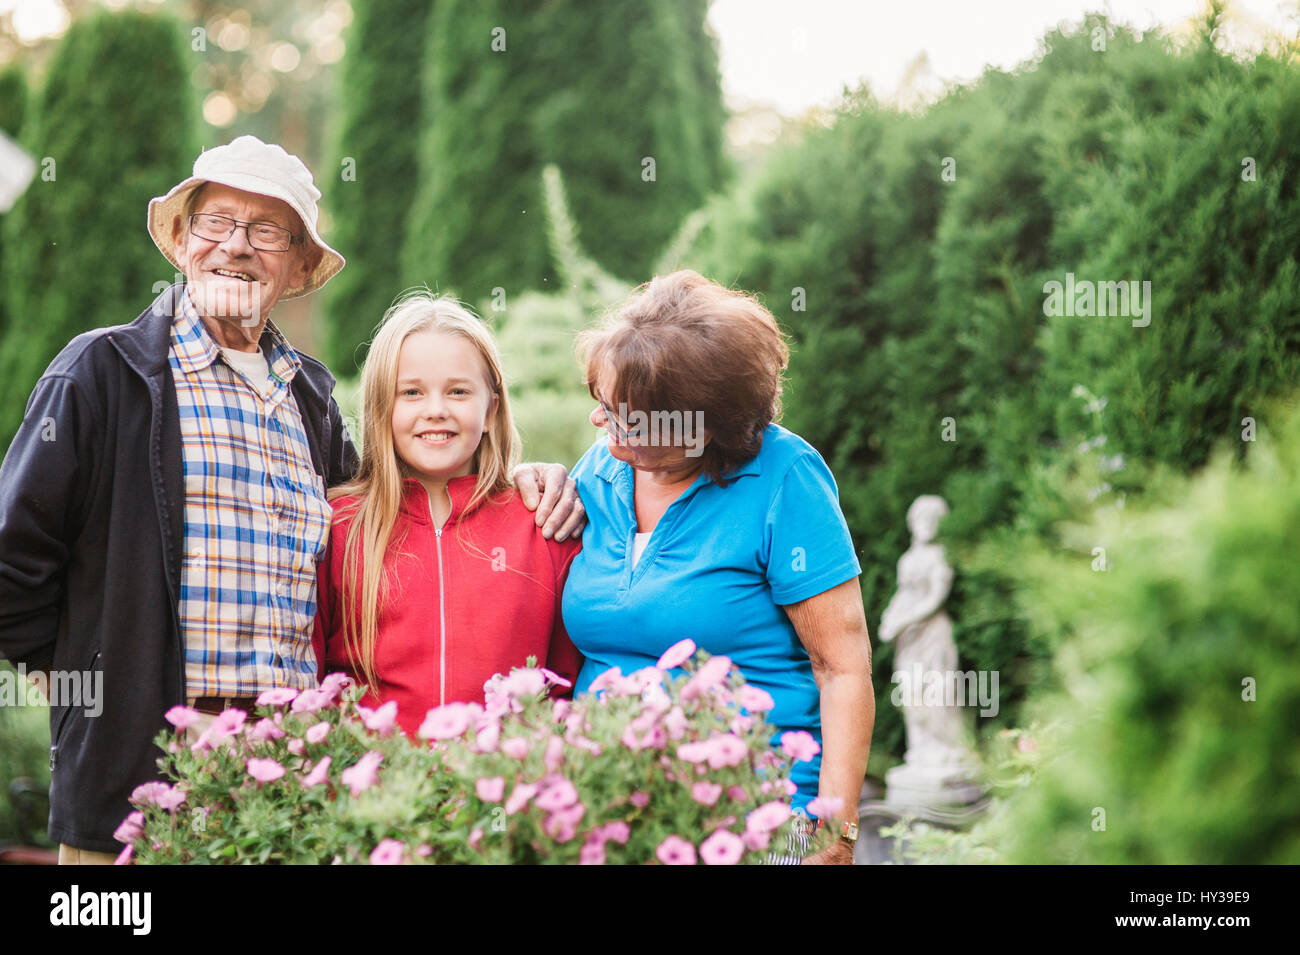 Sweden, Vastmanland, Hallefors, Bergslagen, Girl (12-13) with grandparents posing in garden - Stock Image